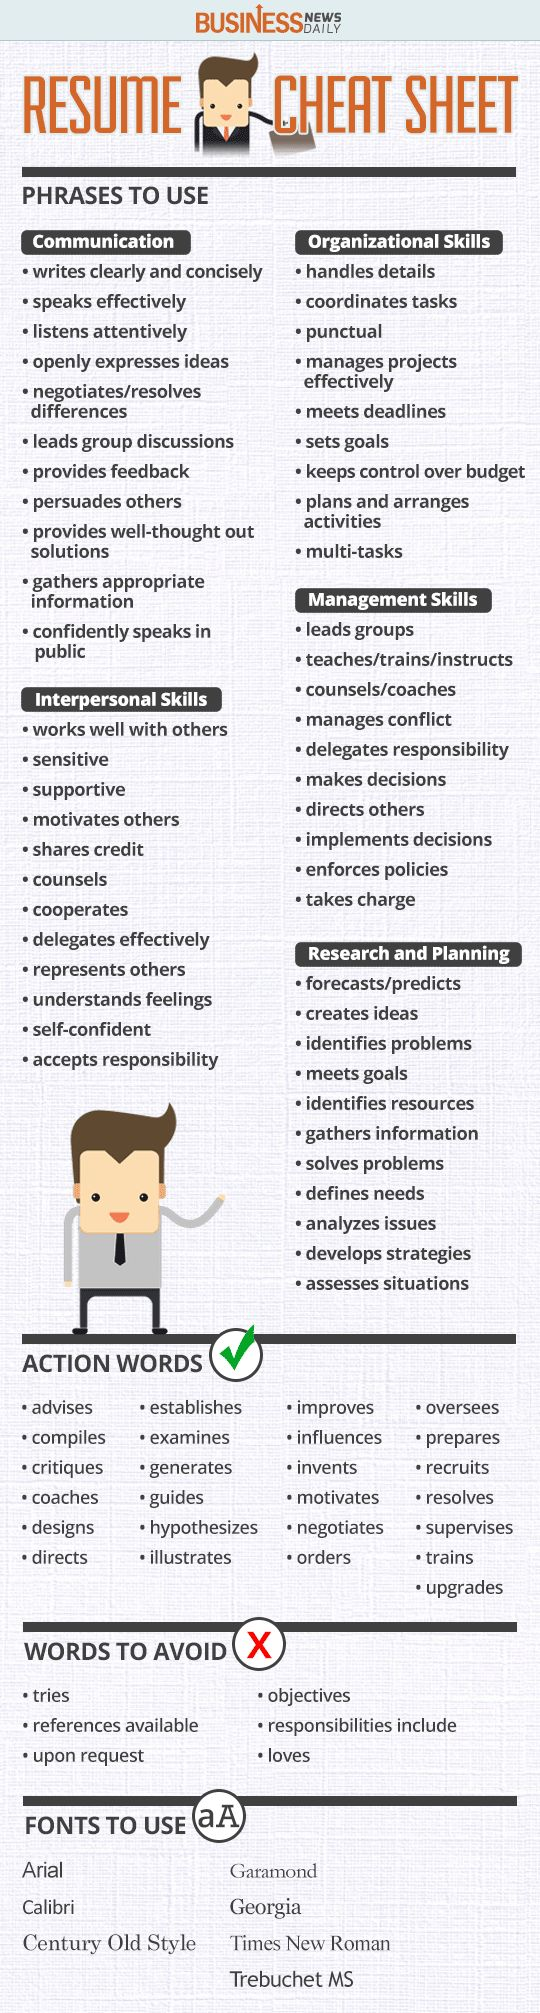 Opposenewapstandardsus  Marvelous  Ideas About Resume On Pinterest  Cv Format Resume Cv And  With Interesting Resume Cheat Sheet Infographic Andrews Almost Done With A Complete Unit On Employment Which With Awesome Resume Education Also Create Resume Online In Addition Best Resume Fonts And Teacher Resume Sample As Well As Free Resume Samples Additionally Resume Cover Letter Samples From Pinterestcom With Opposenewapstandardsus  Interesting  Ideas About Resume On Pinterest  Cv Format Resume Cv And  With Awesome Resume Cheat Sheet Infographic Andrews Almost Done With A Complete Unit On Employment Which And Marvelous Resume Education Also Create Resume Online In Addition Best Resume Fonts From Pinterestcom